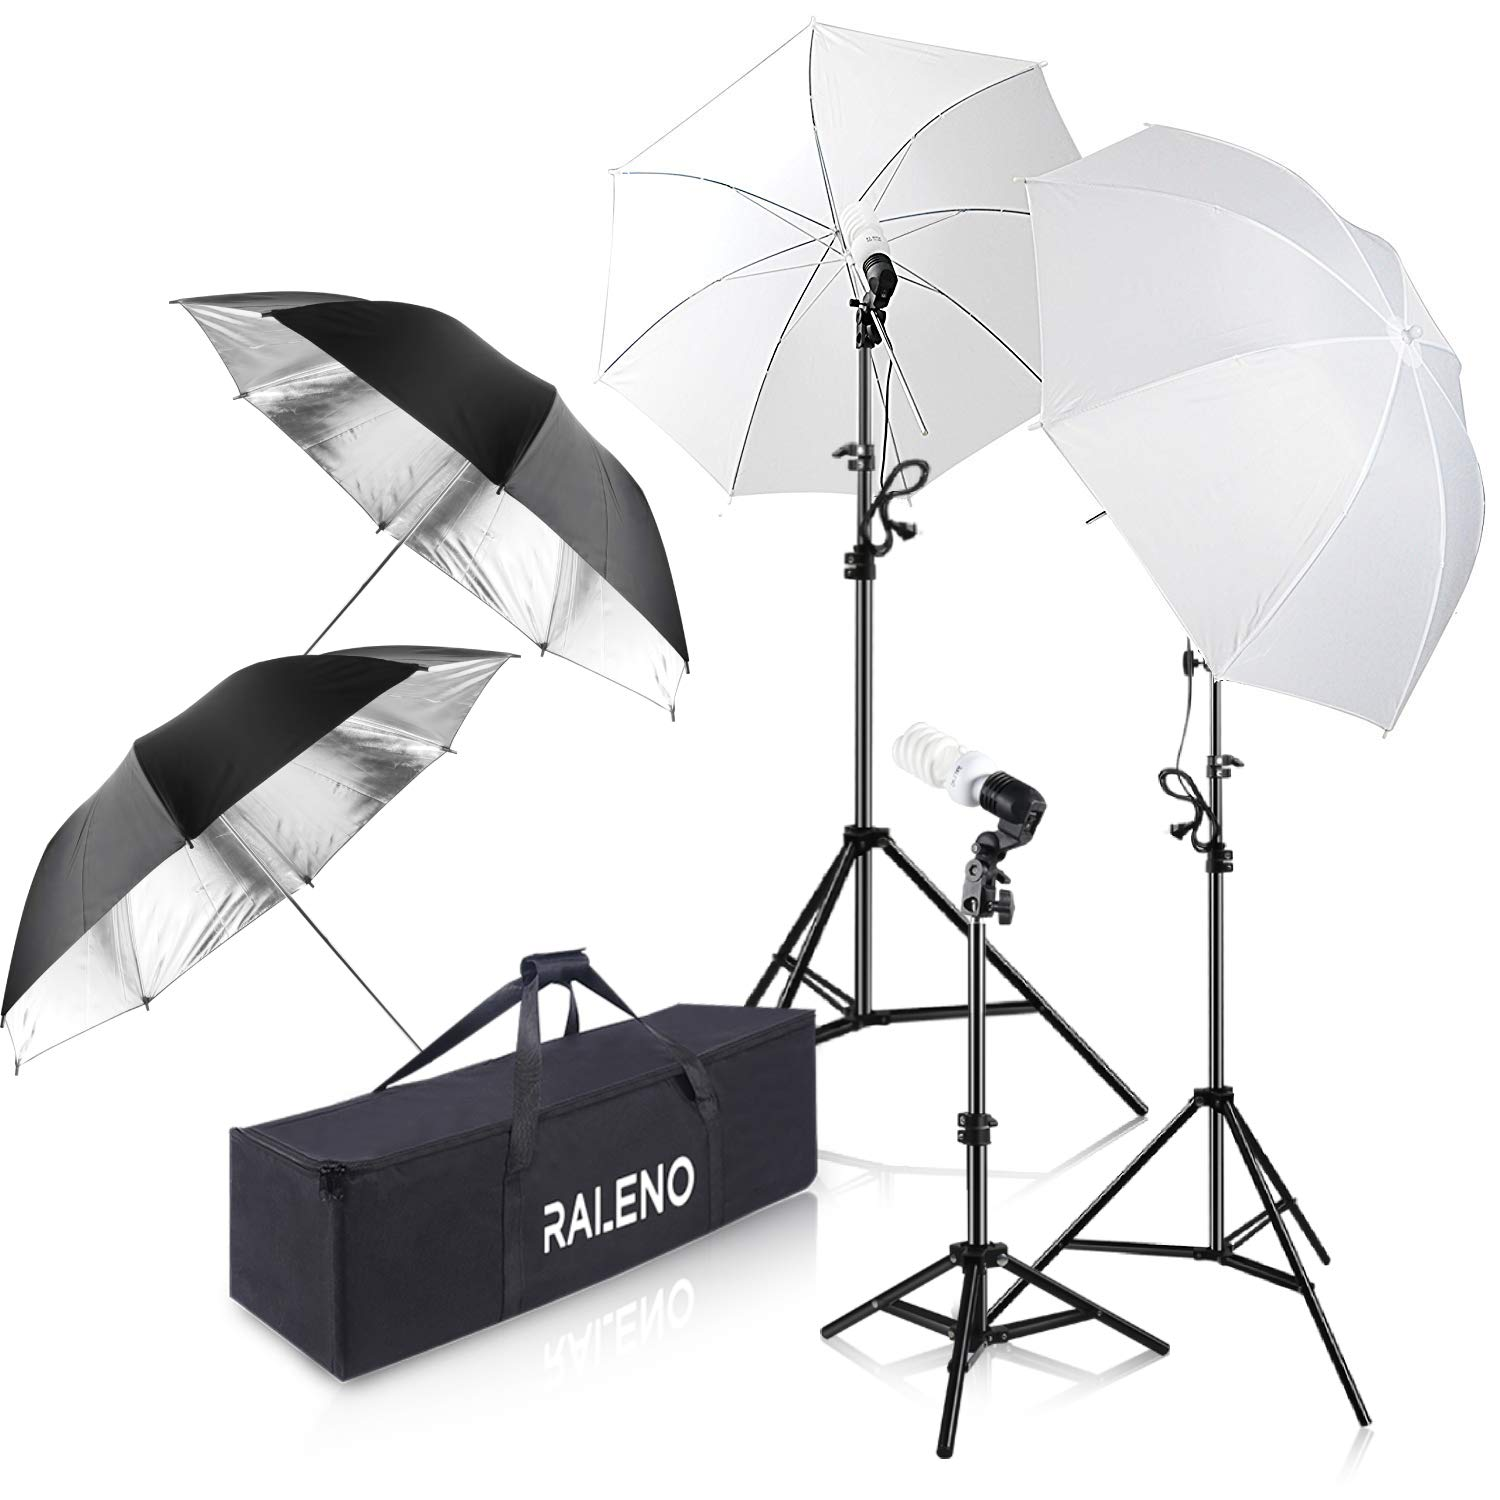 Photography Umbrella Lighting Kit, 600W 5500K Day Light Continuous Studio Lights Equipment for Portrait Video Studio Shooting by RALENO by RaLeno